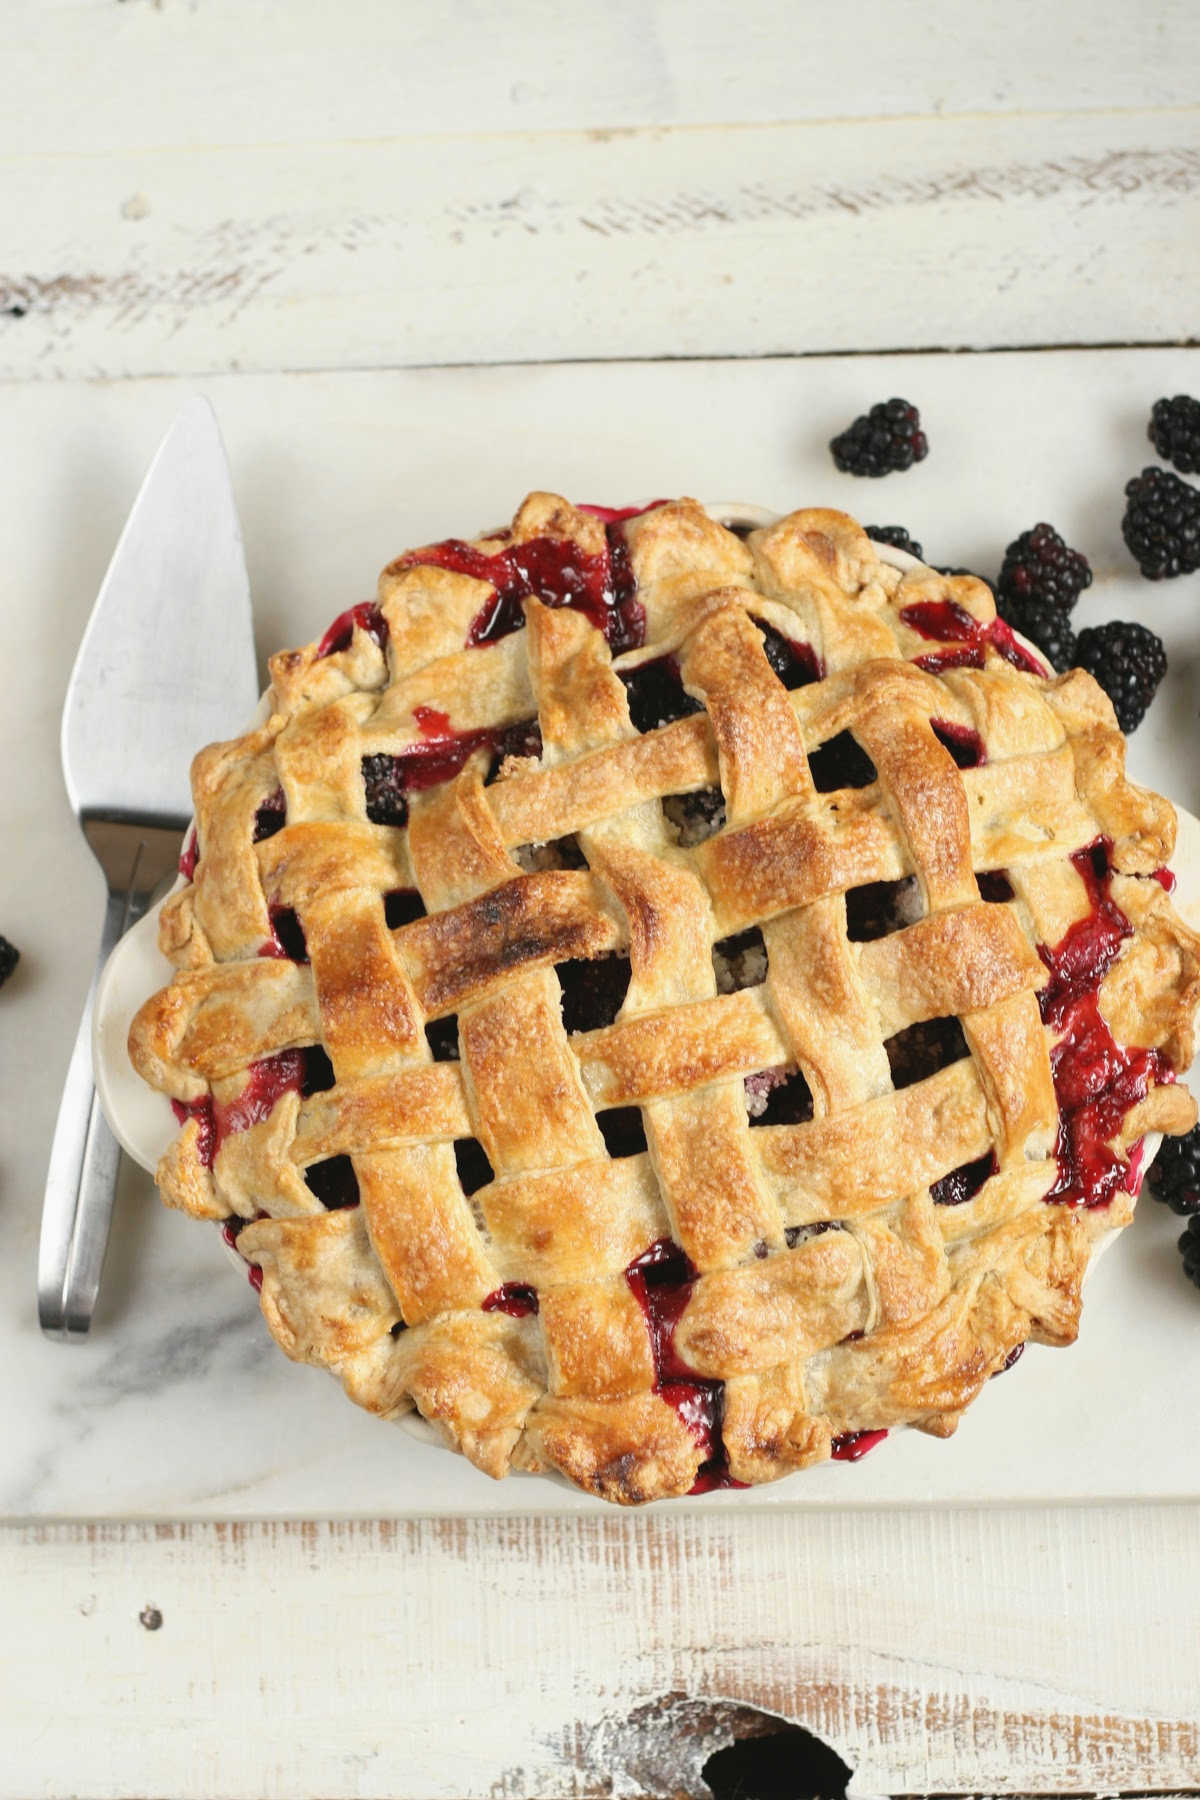 blackberry pie with lattice crust on white marble, metal server to the left.